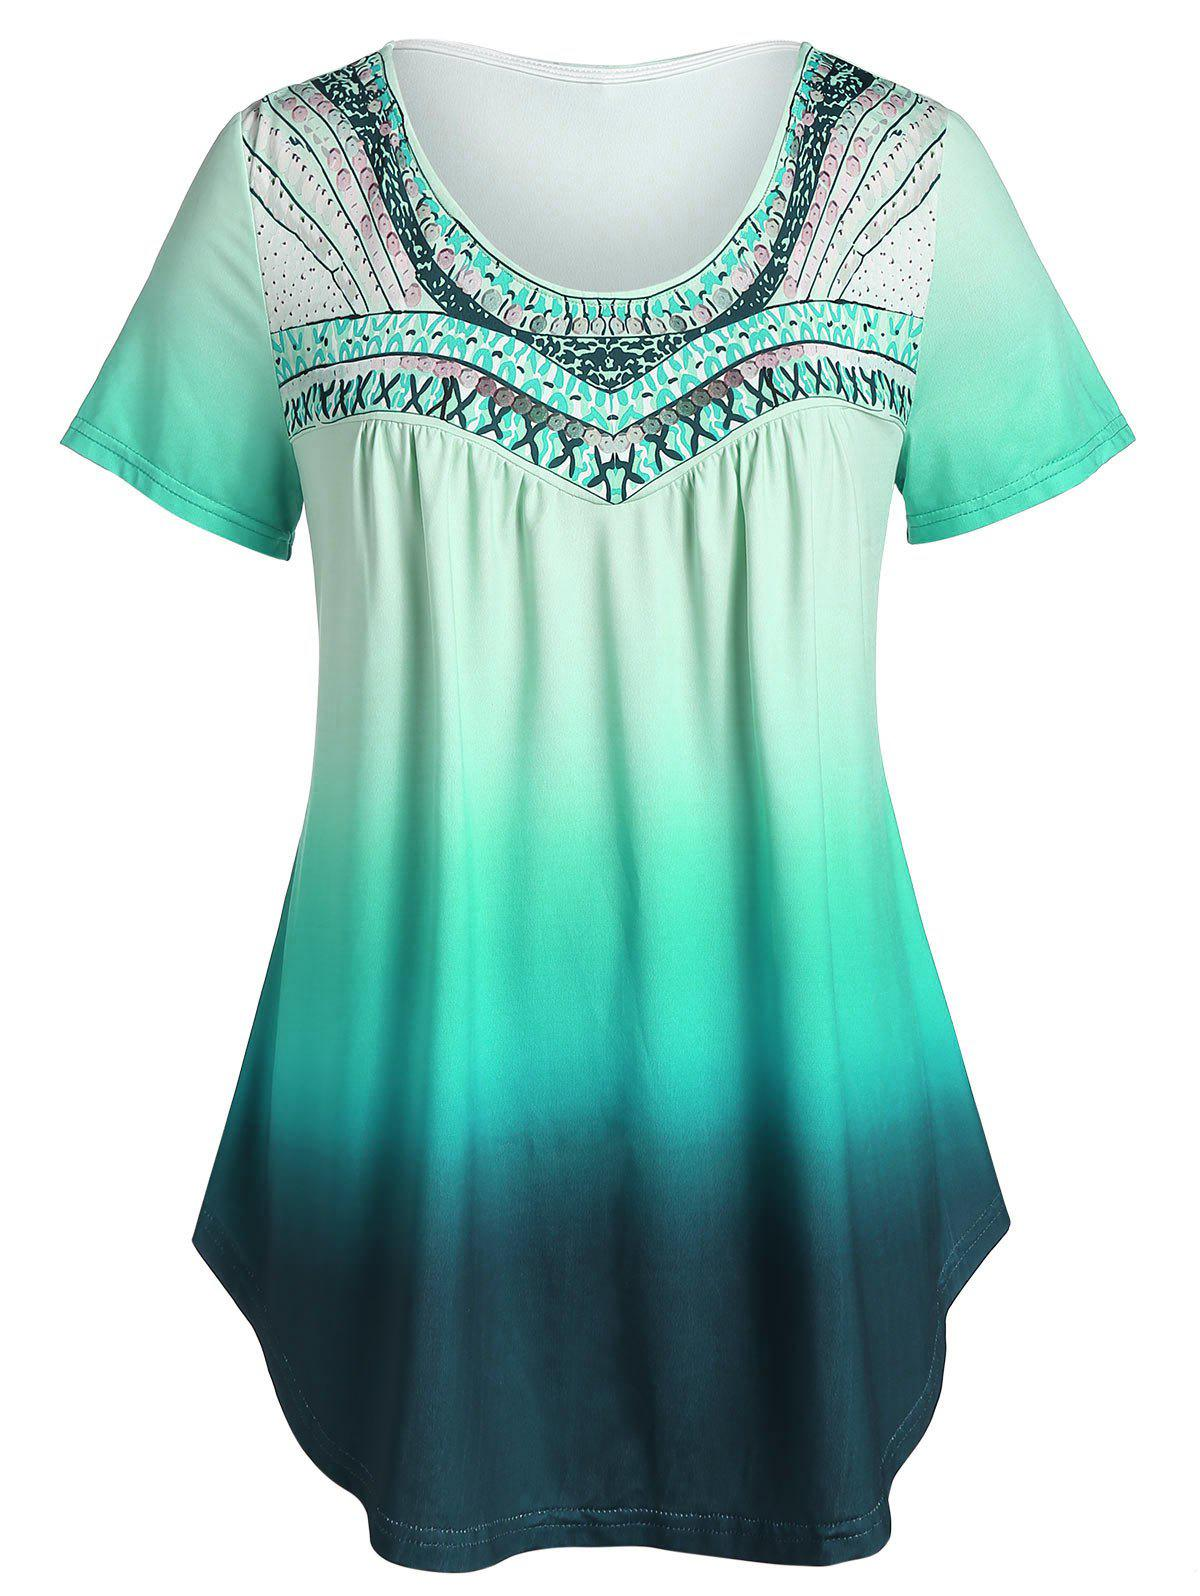 Plus Size Ombre Round Collar Tunic T Shirt - LIGHT SEA GREEN 5X